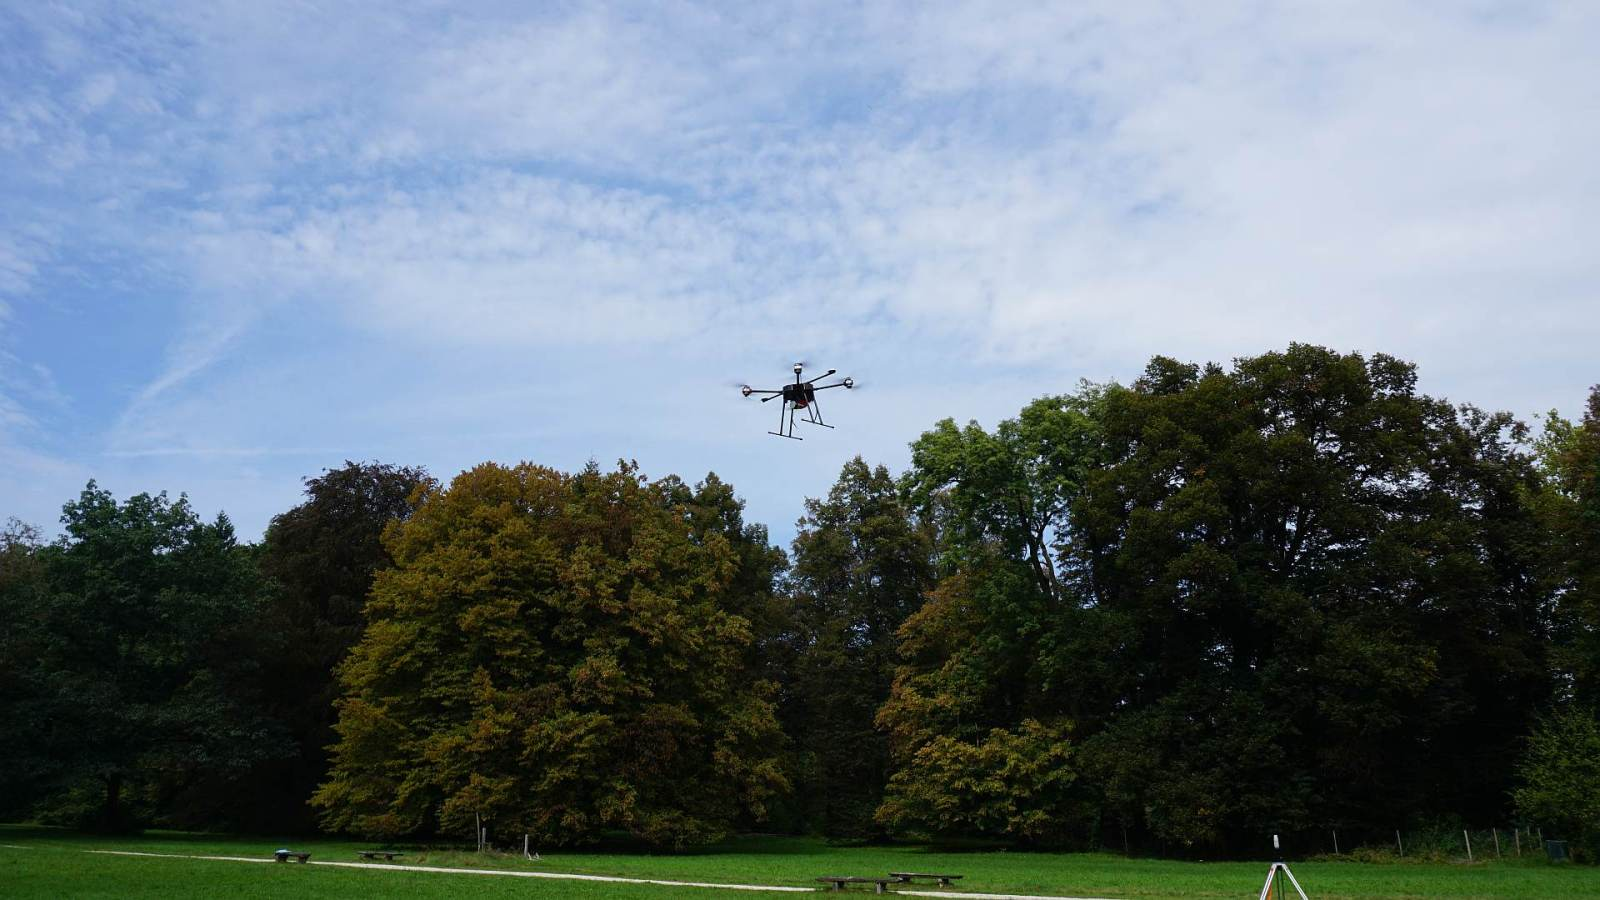 High-performance drone technology